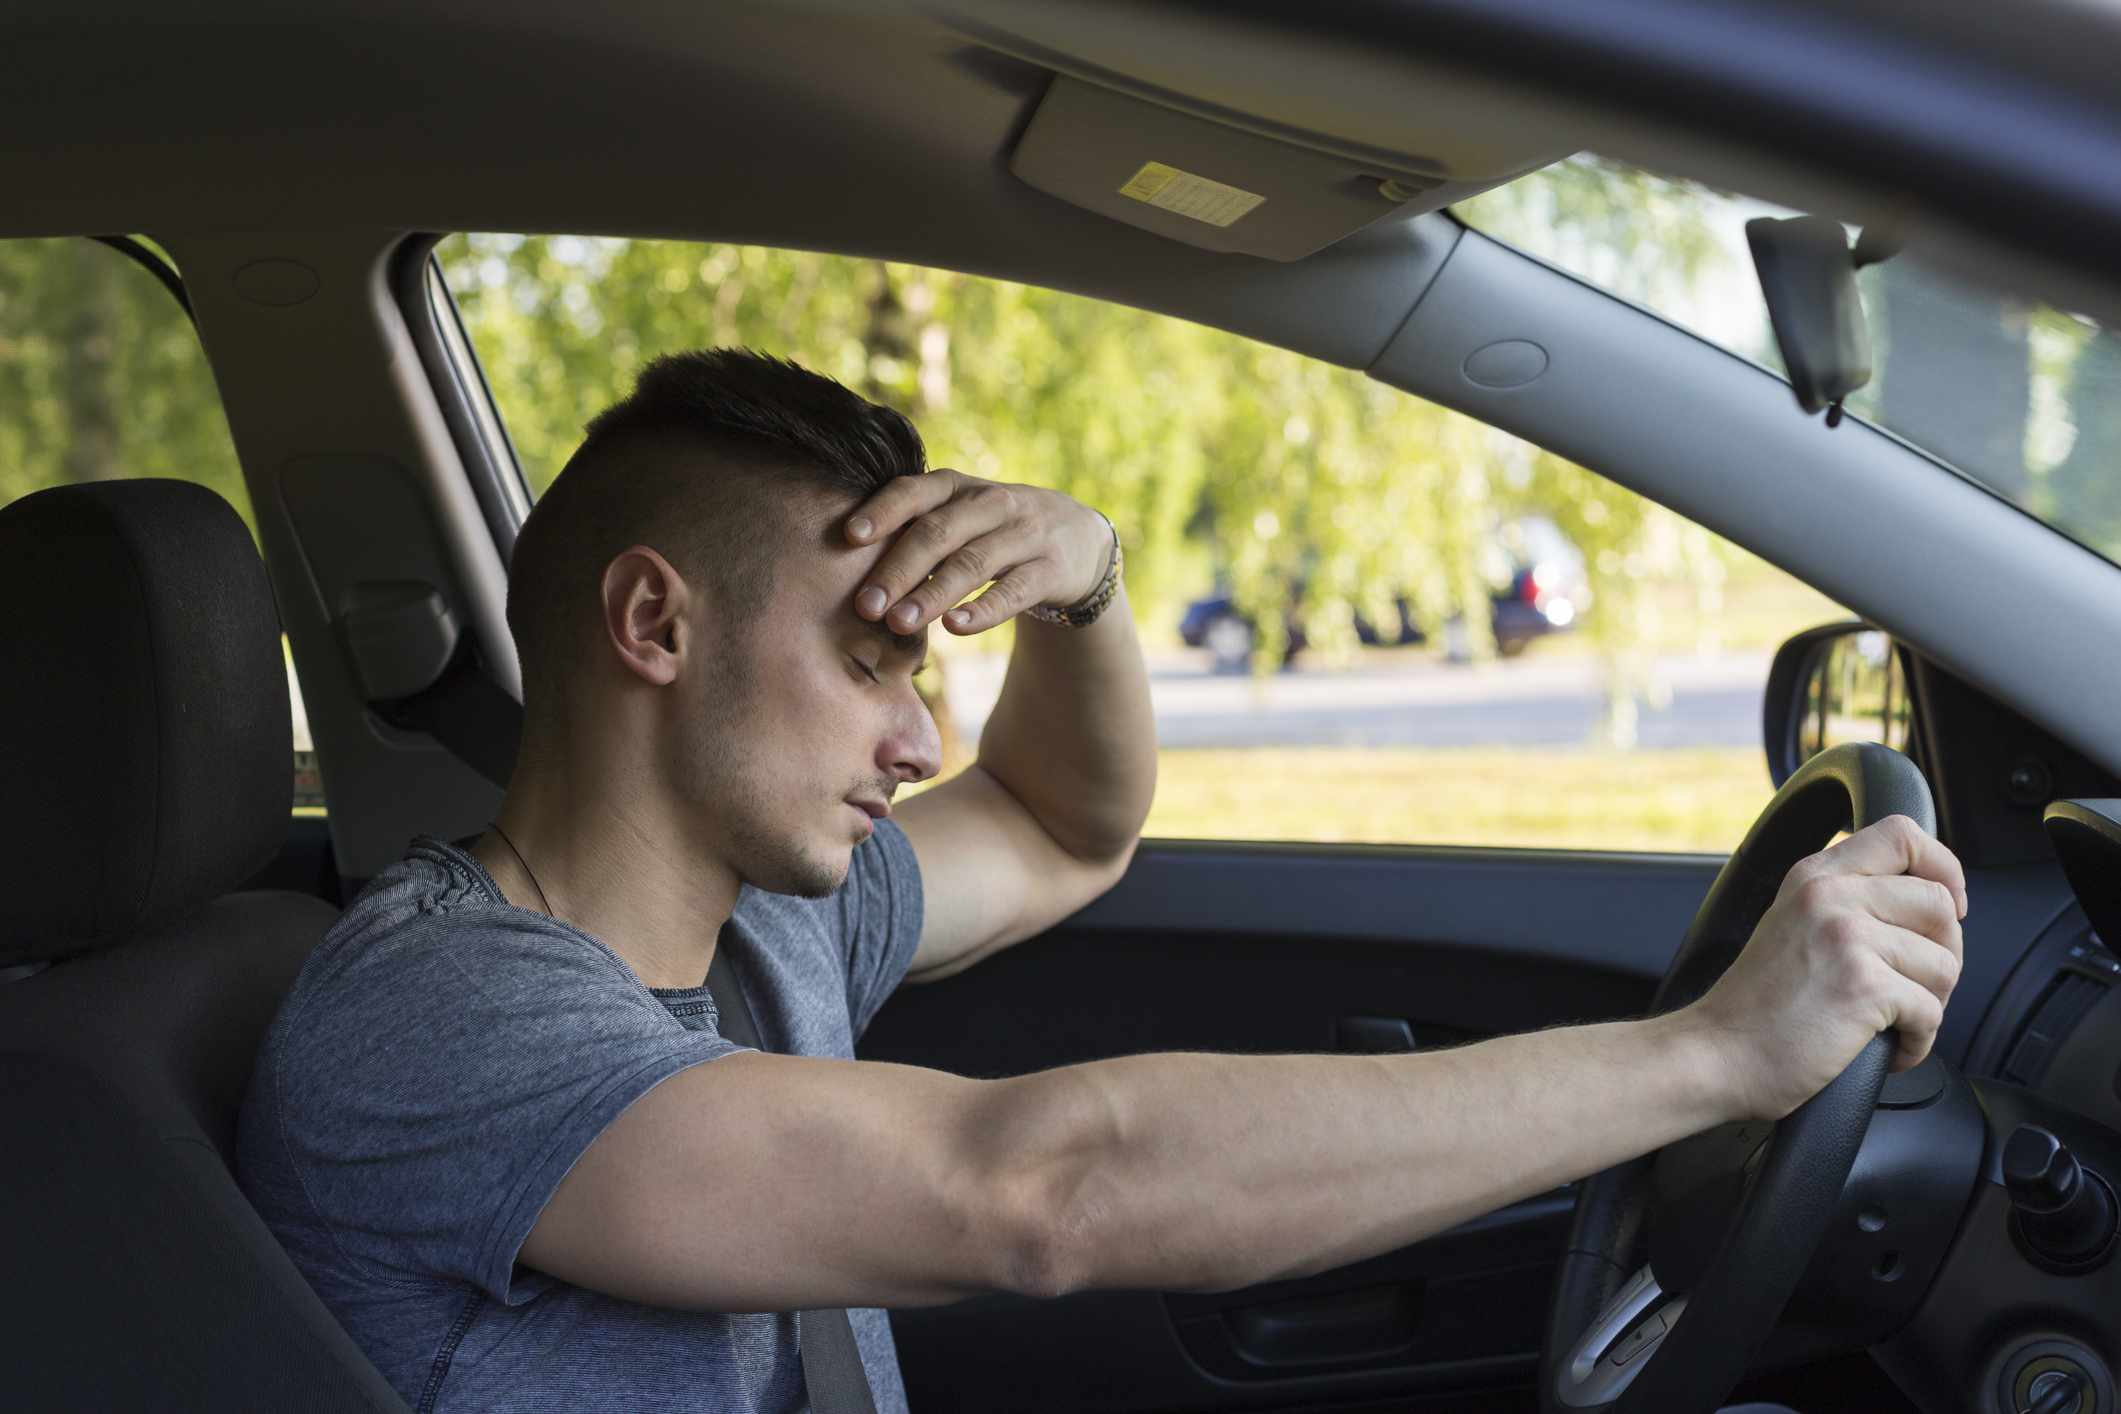 Drowsy while driving may be due to narcolepsy